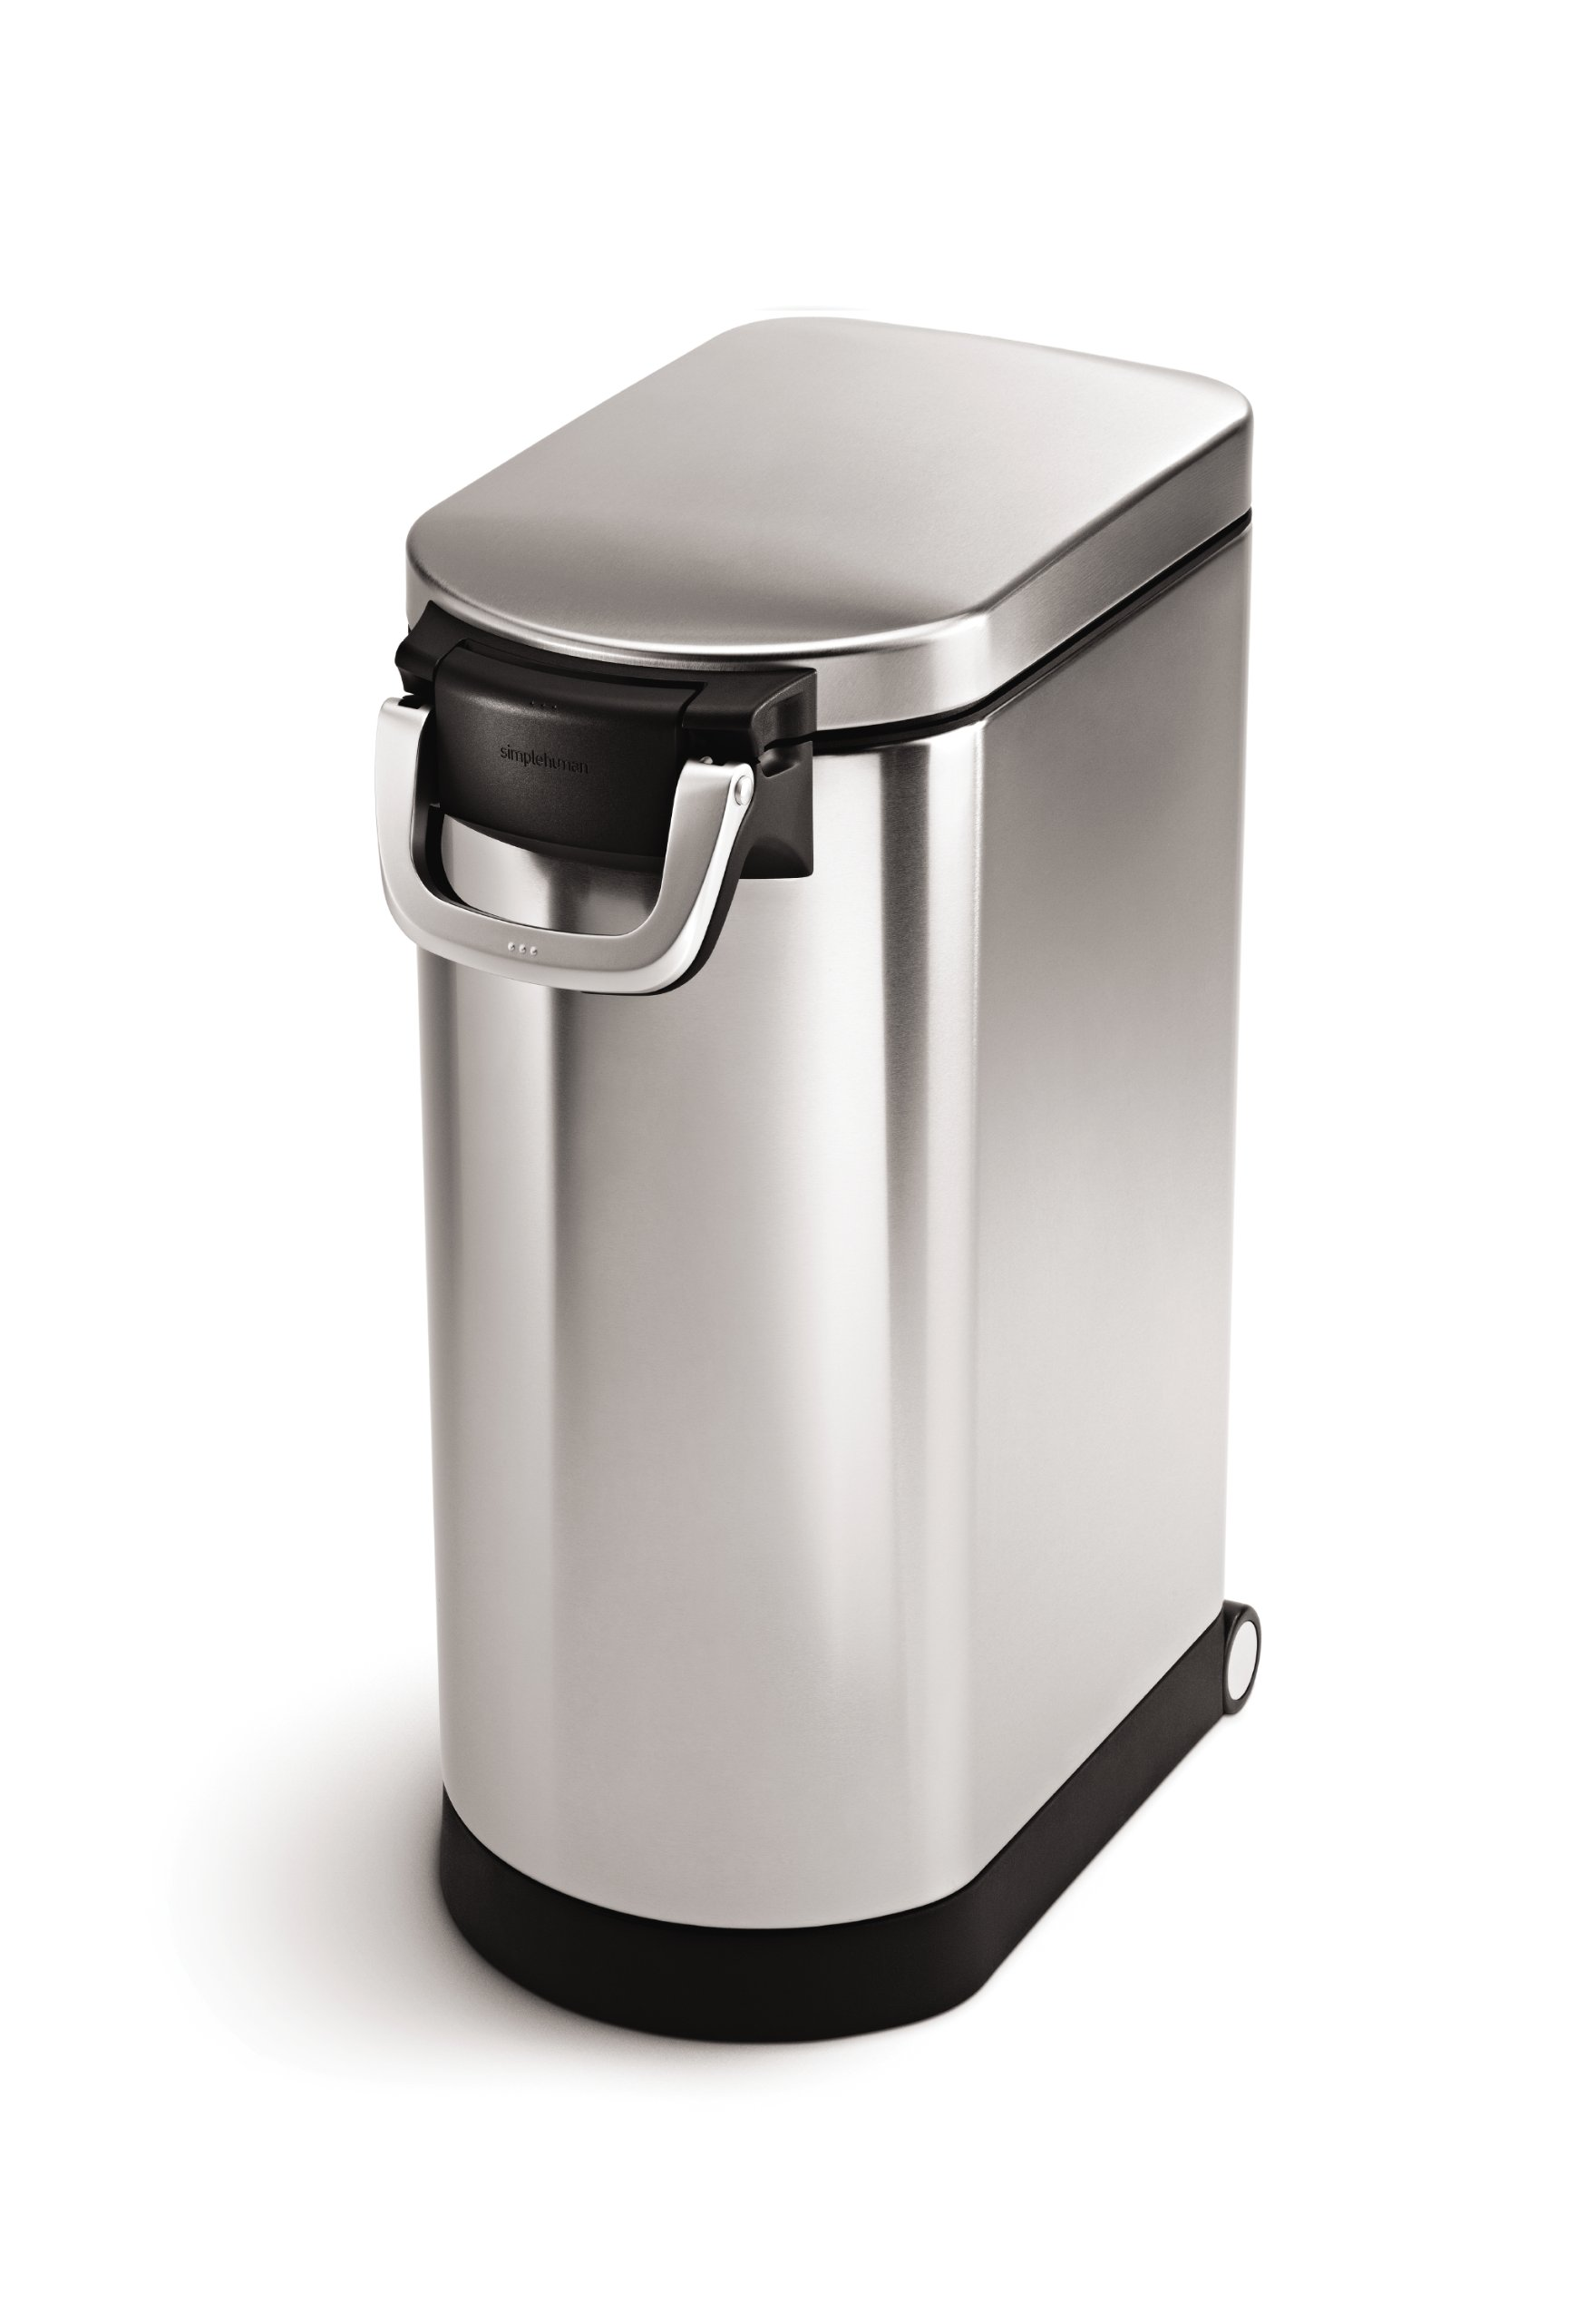 simplehuman 35 Liter, 40 lb / 18.1 kg X-Large Pet Food Storage Can, Brushed Stainless Steel by simplehuman